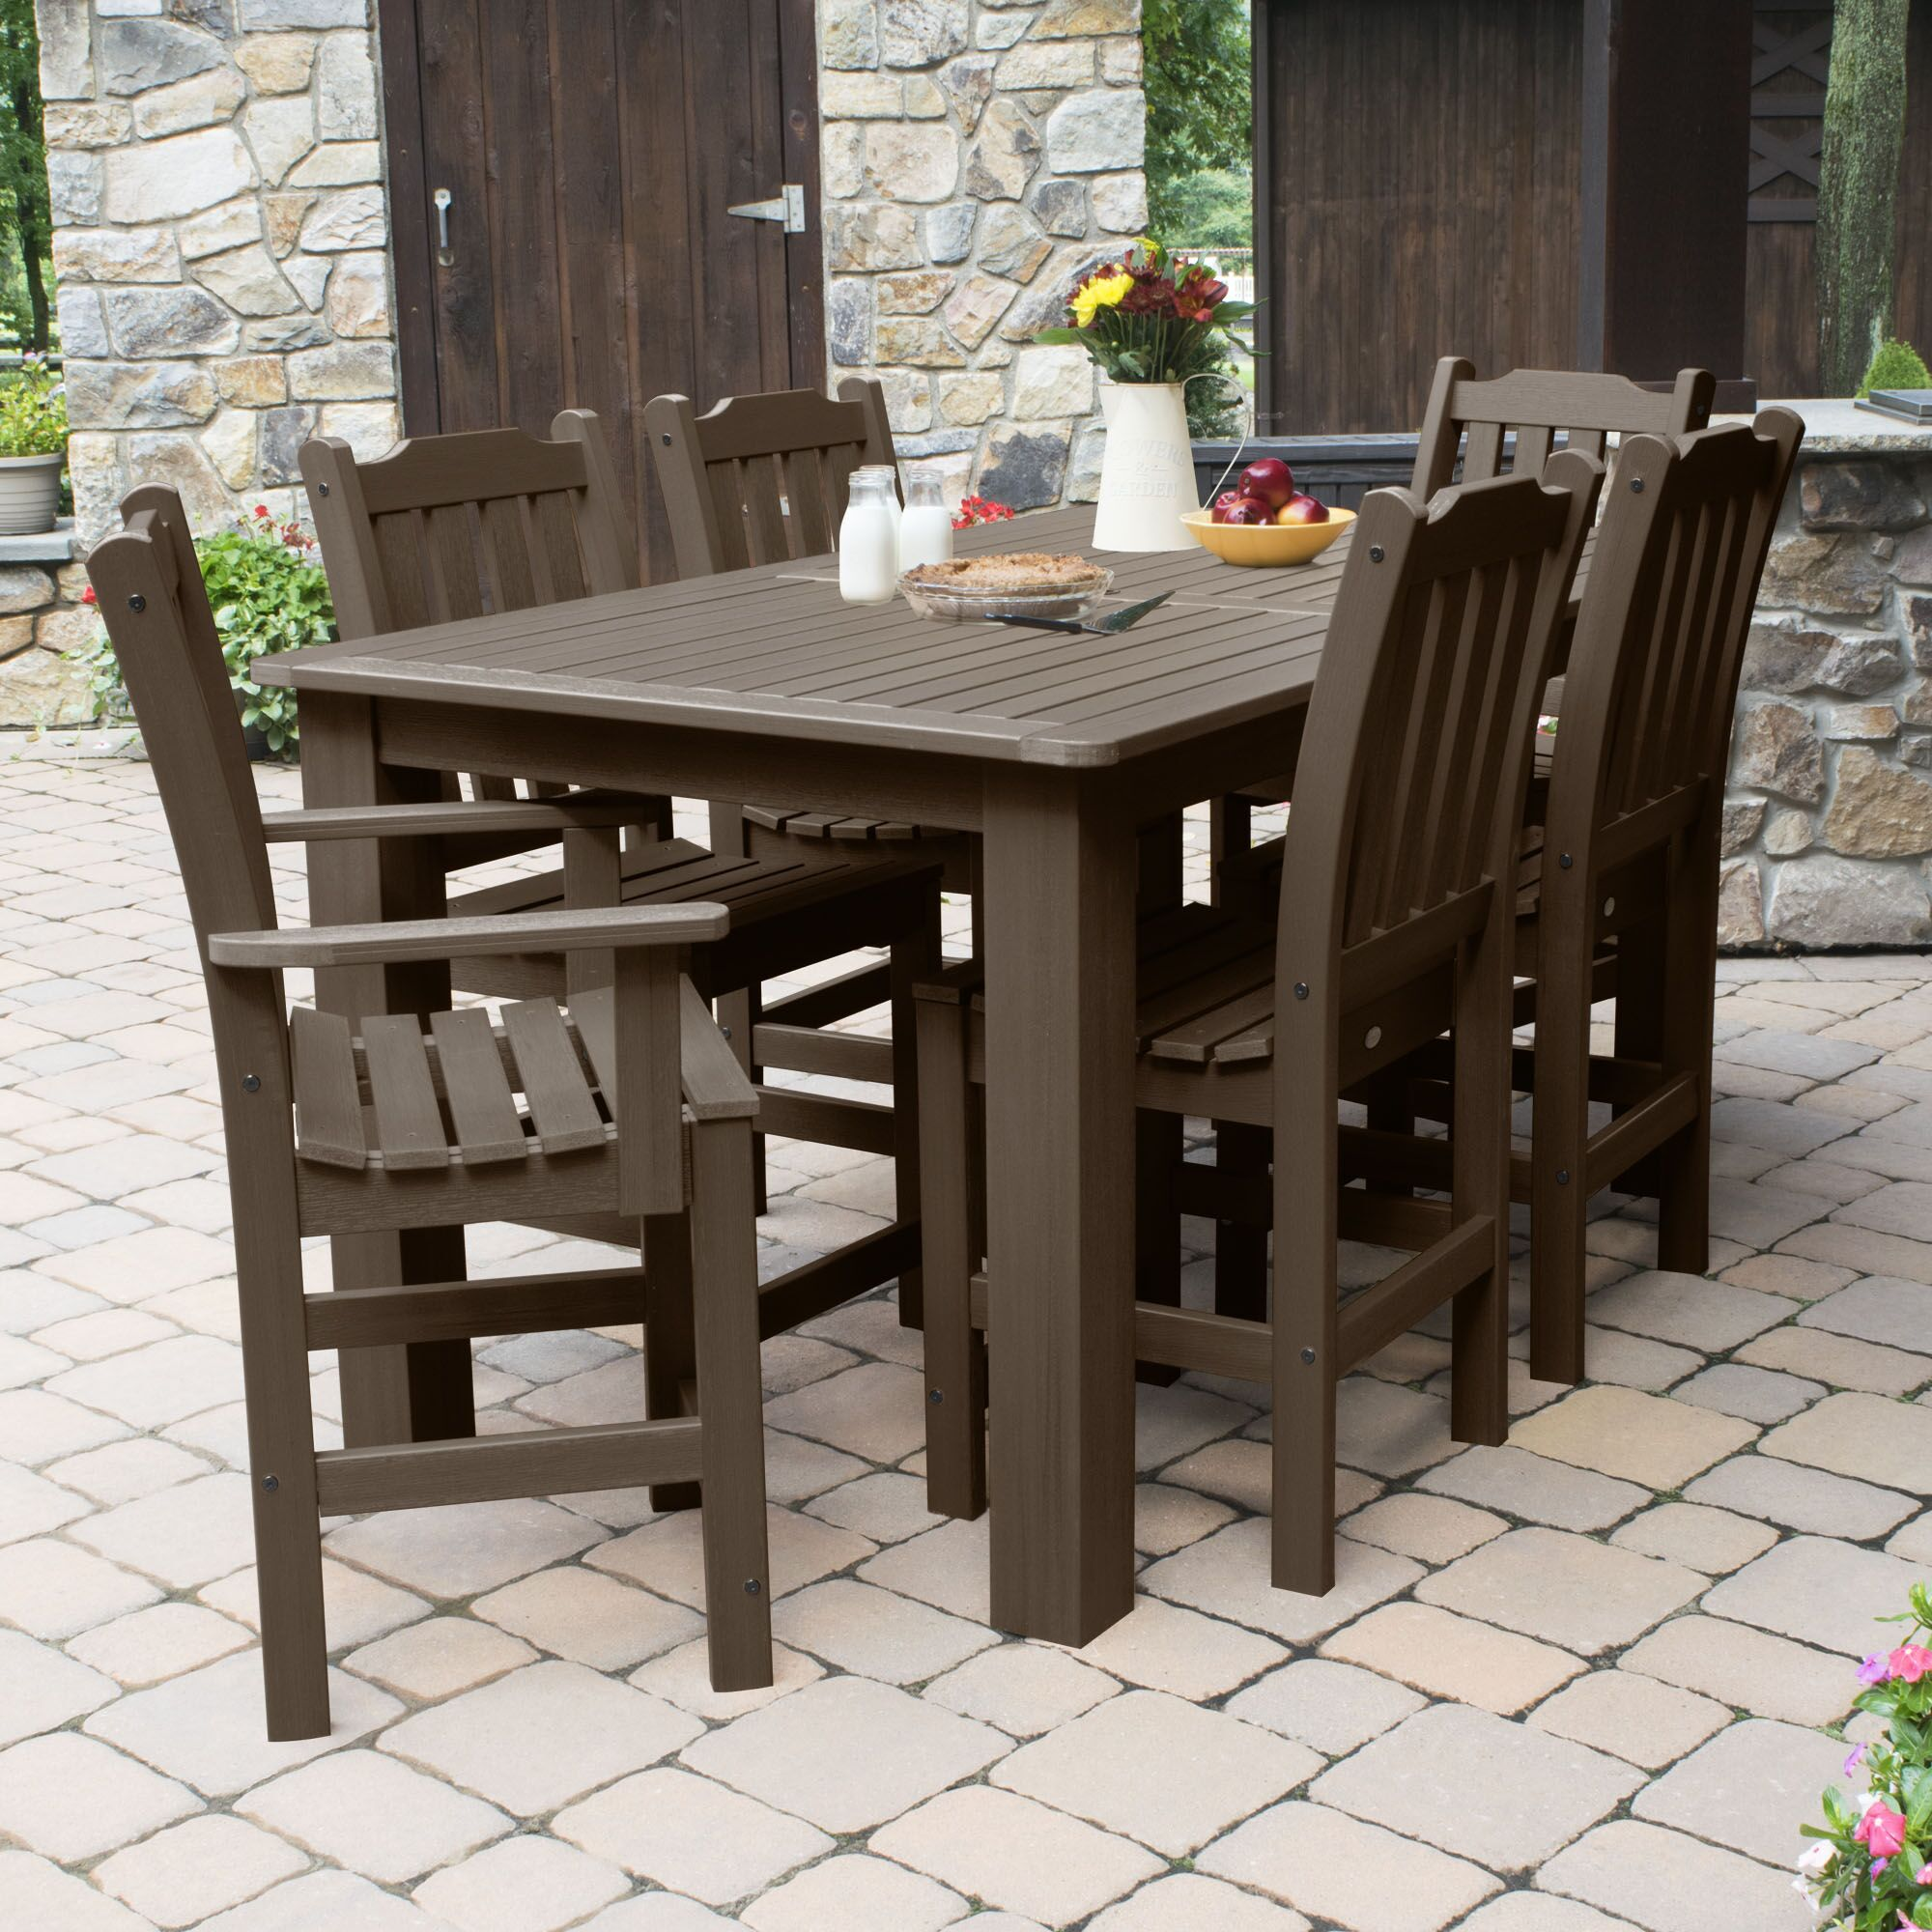 Billups 7 Piece Dining Set Color: Weathered Acorn, Table Top Size: 43.3'' H x 55.5'' W x 86.5'' L